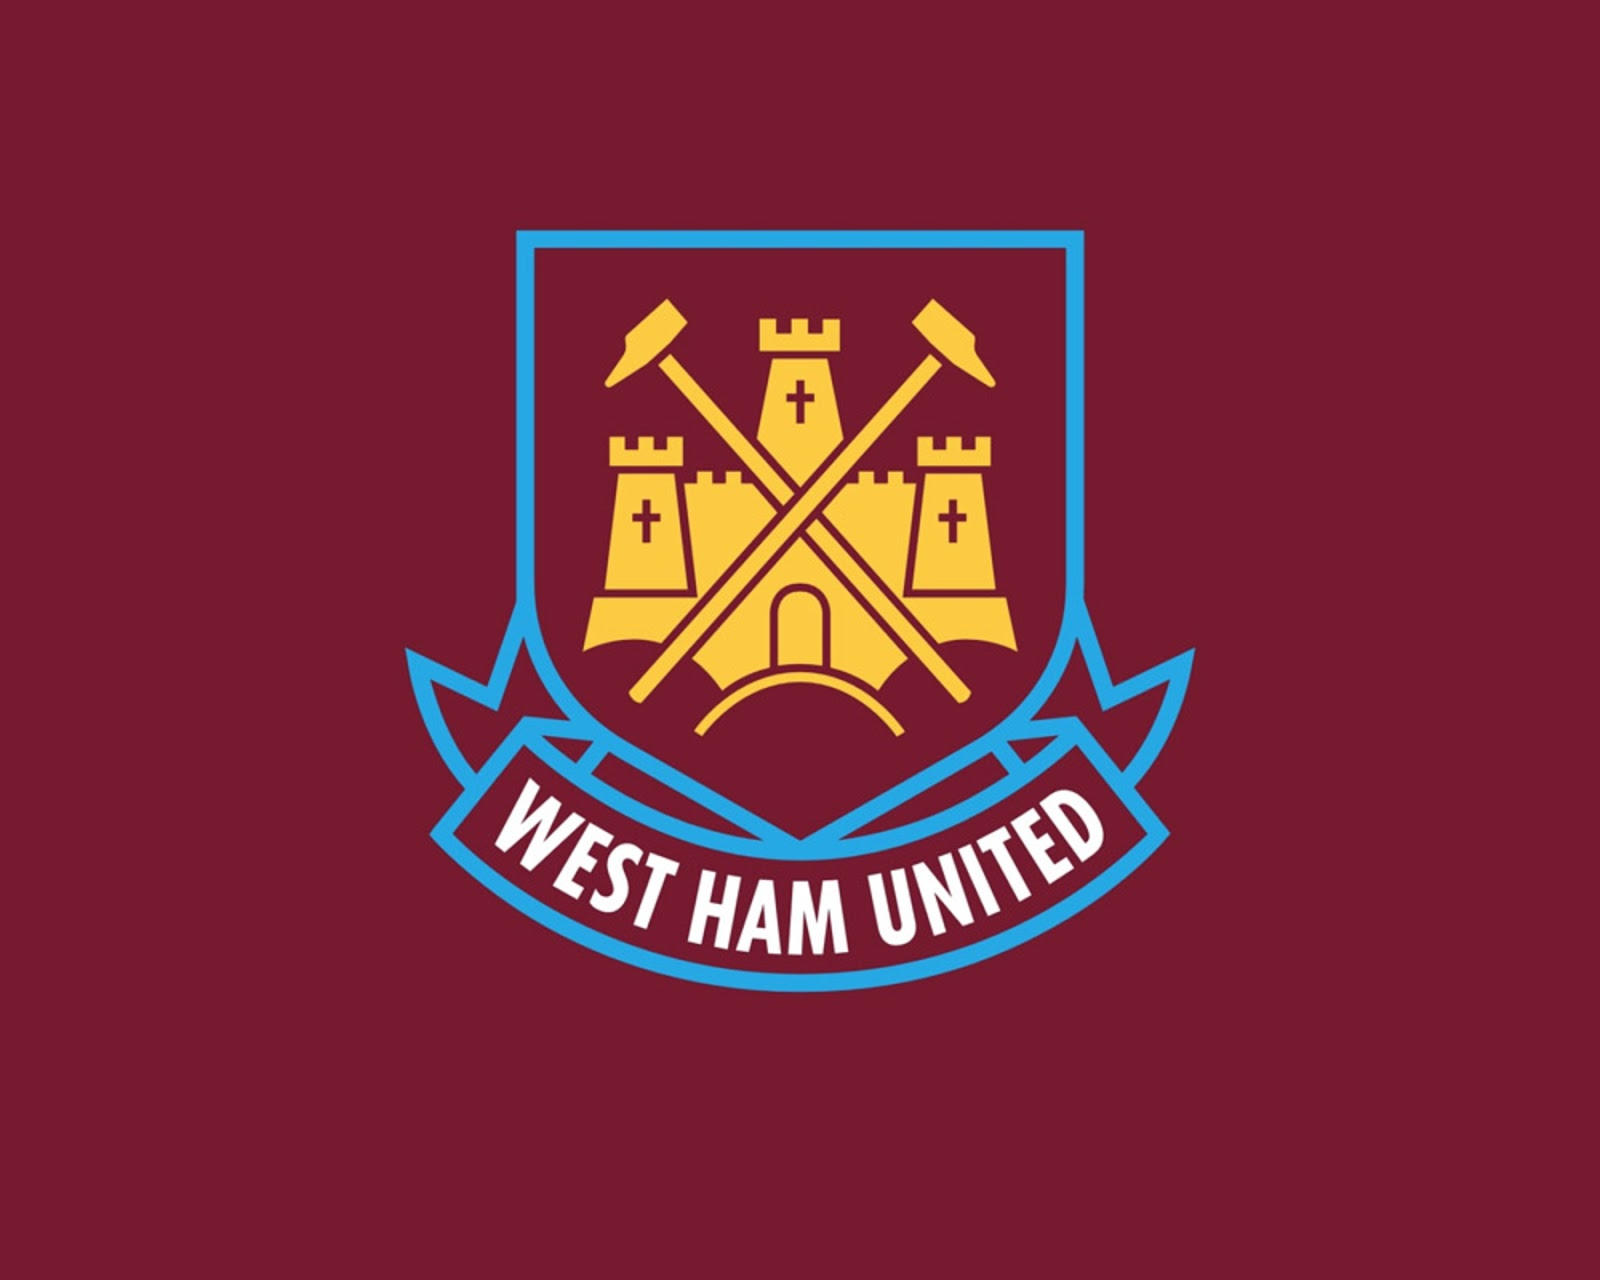 World Cup: West Ham United Logo Wallpapers